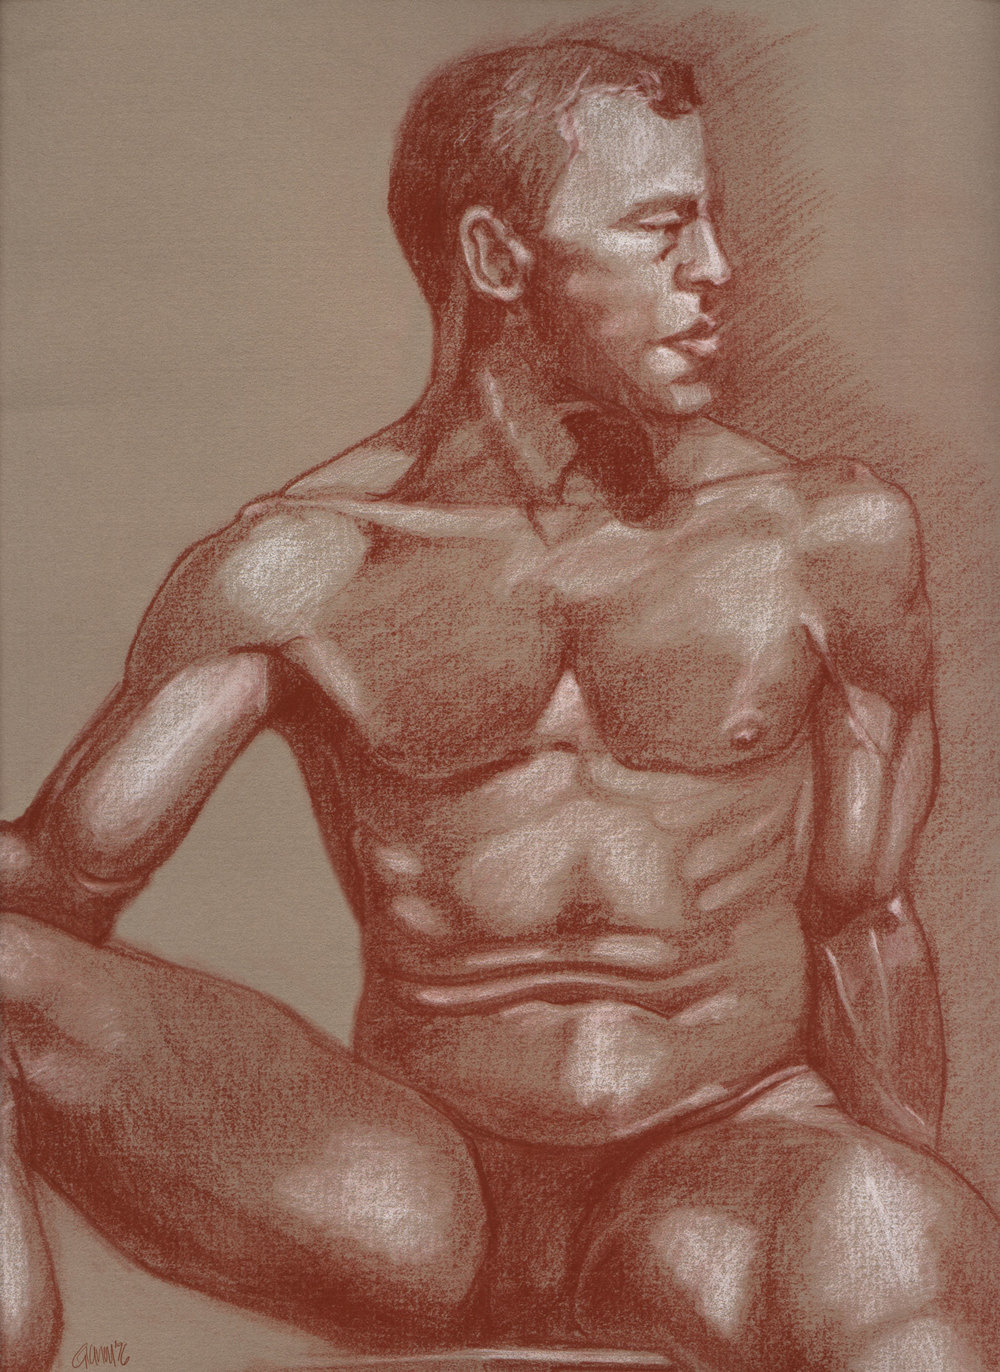 Man in the Nude